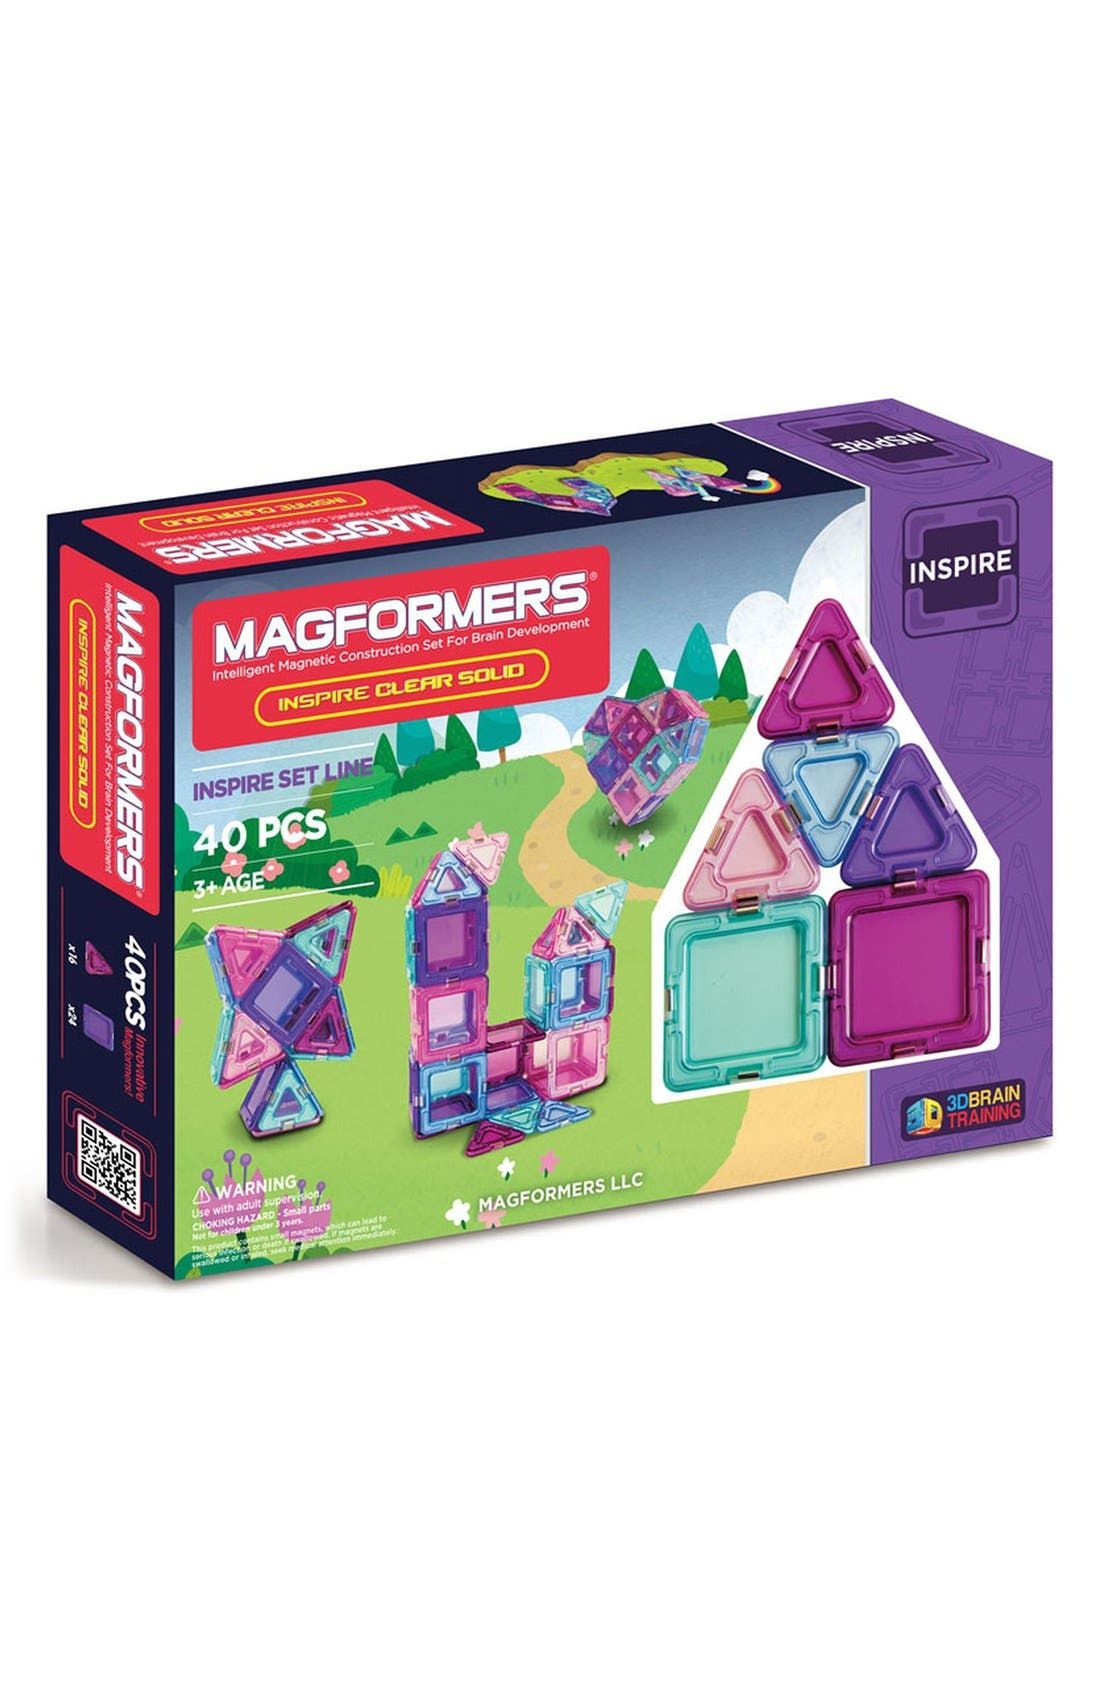 MAGFORMERS 'Inspire - Solids' Clear Magnetic 3D Construction